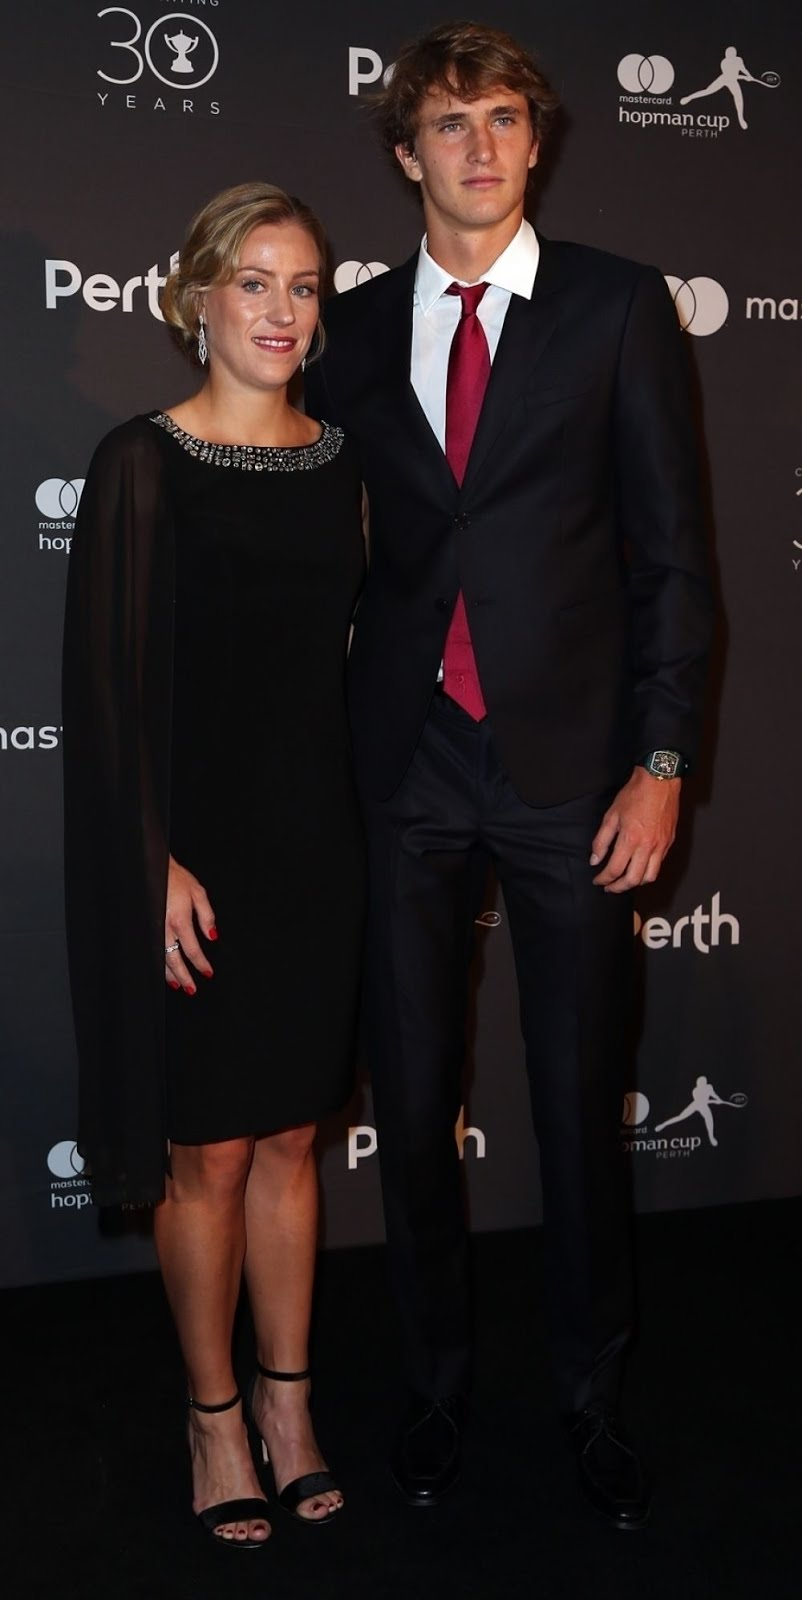 HD Photos of Angelique Kerber And Alexander Zverev At Hopman Cup New Years Eve Players Ball In Perth